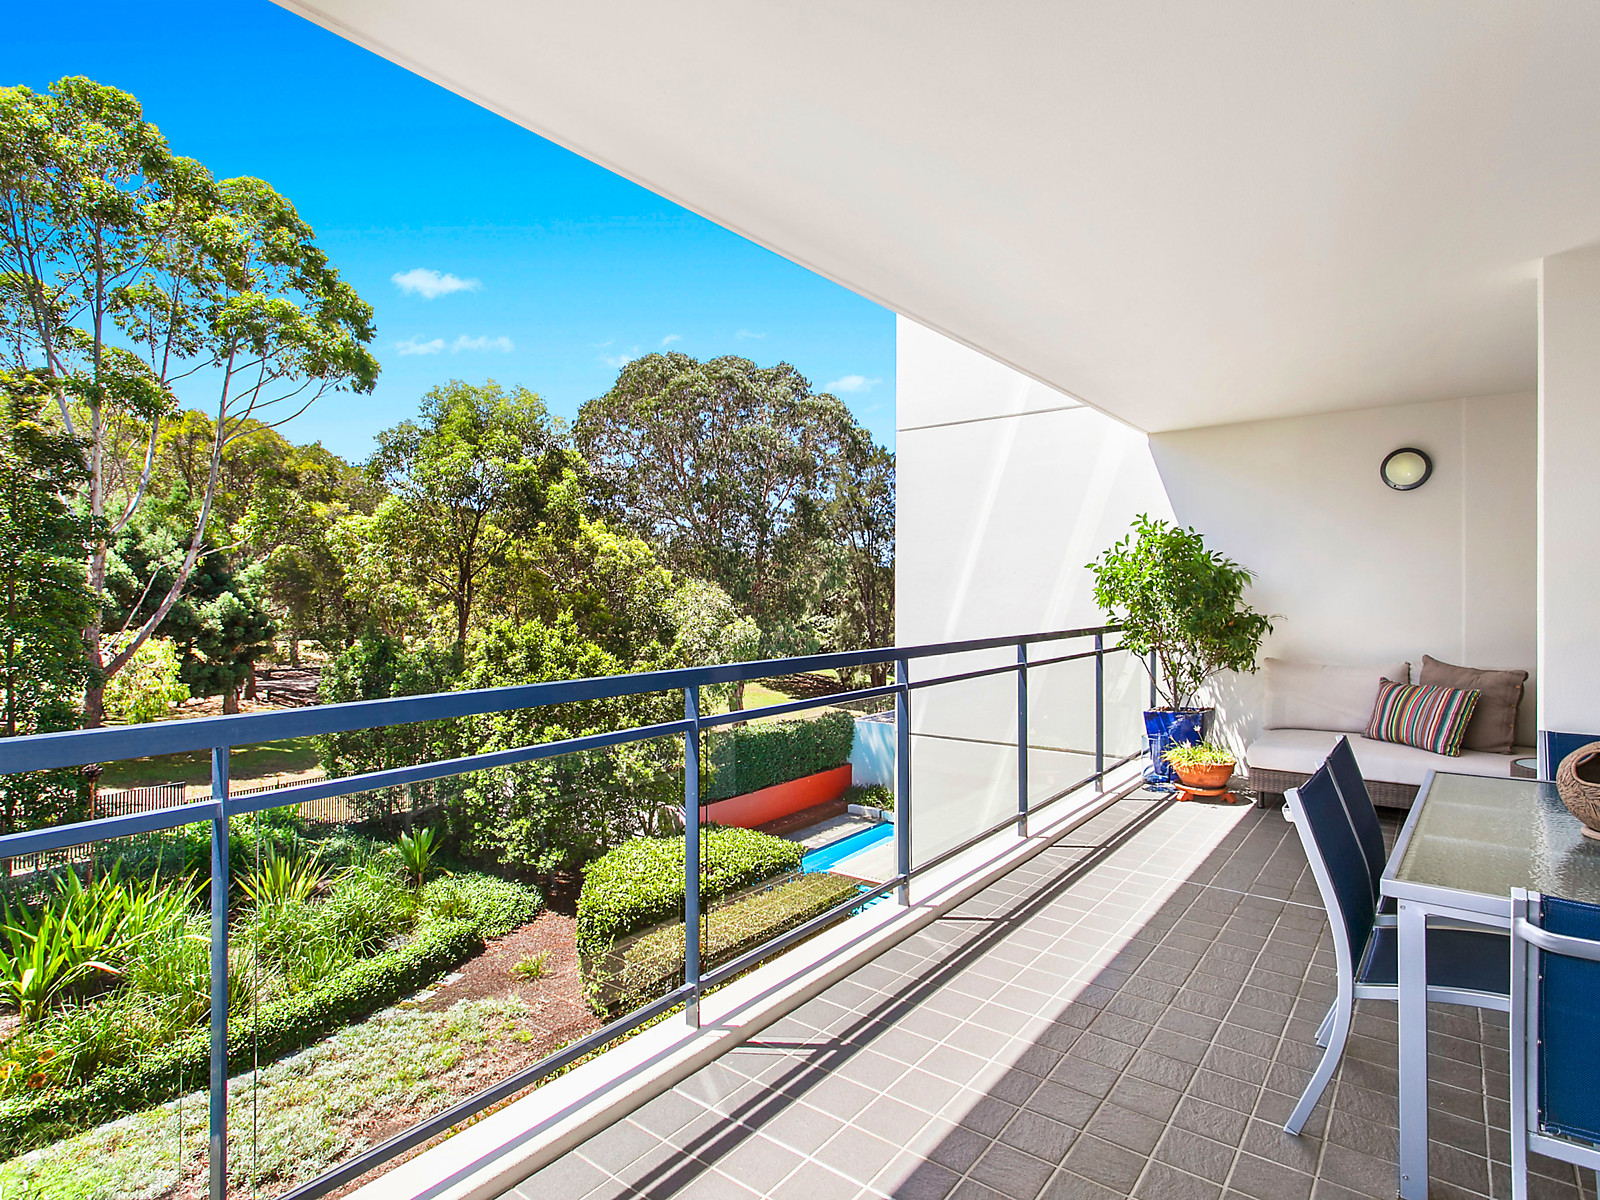 Brochure for 8 1 bayside terrace cabarita nsw for 1 bayside terrace cabarita